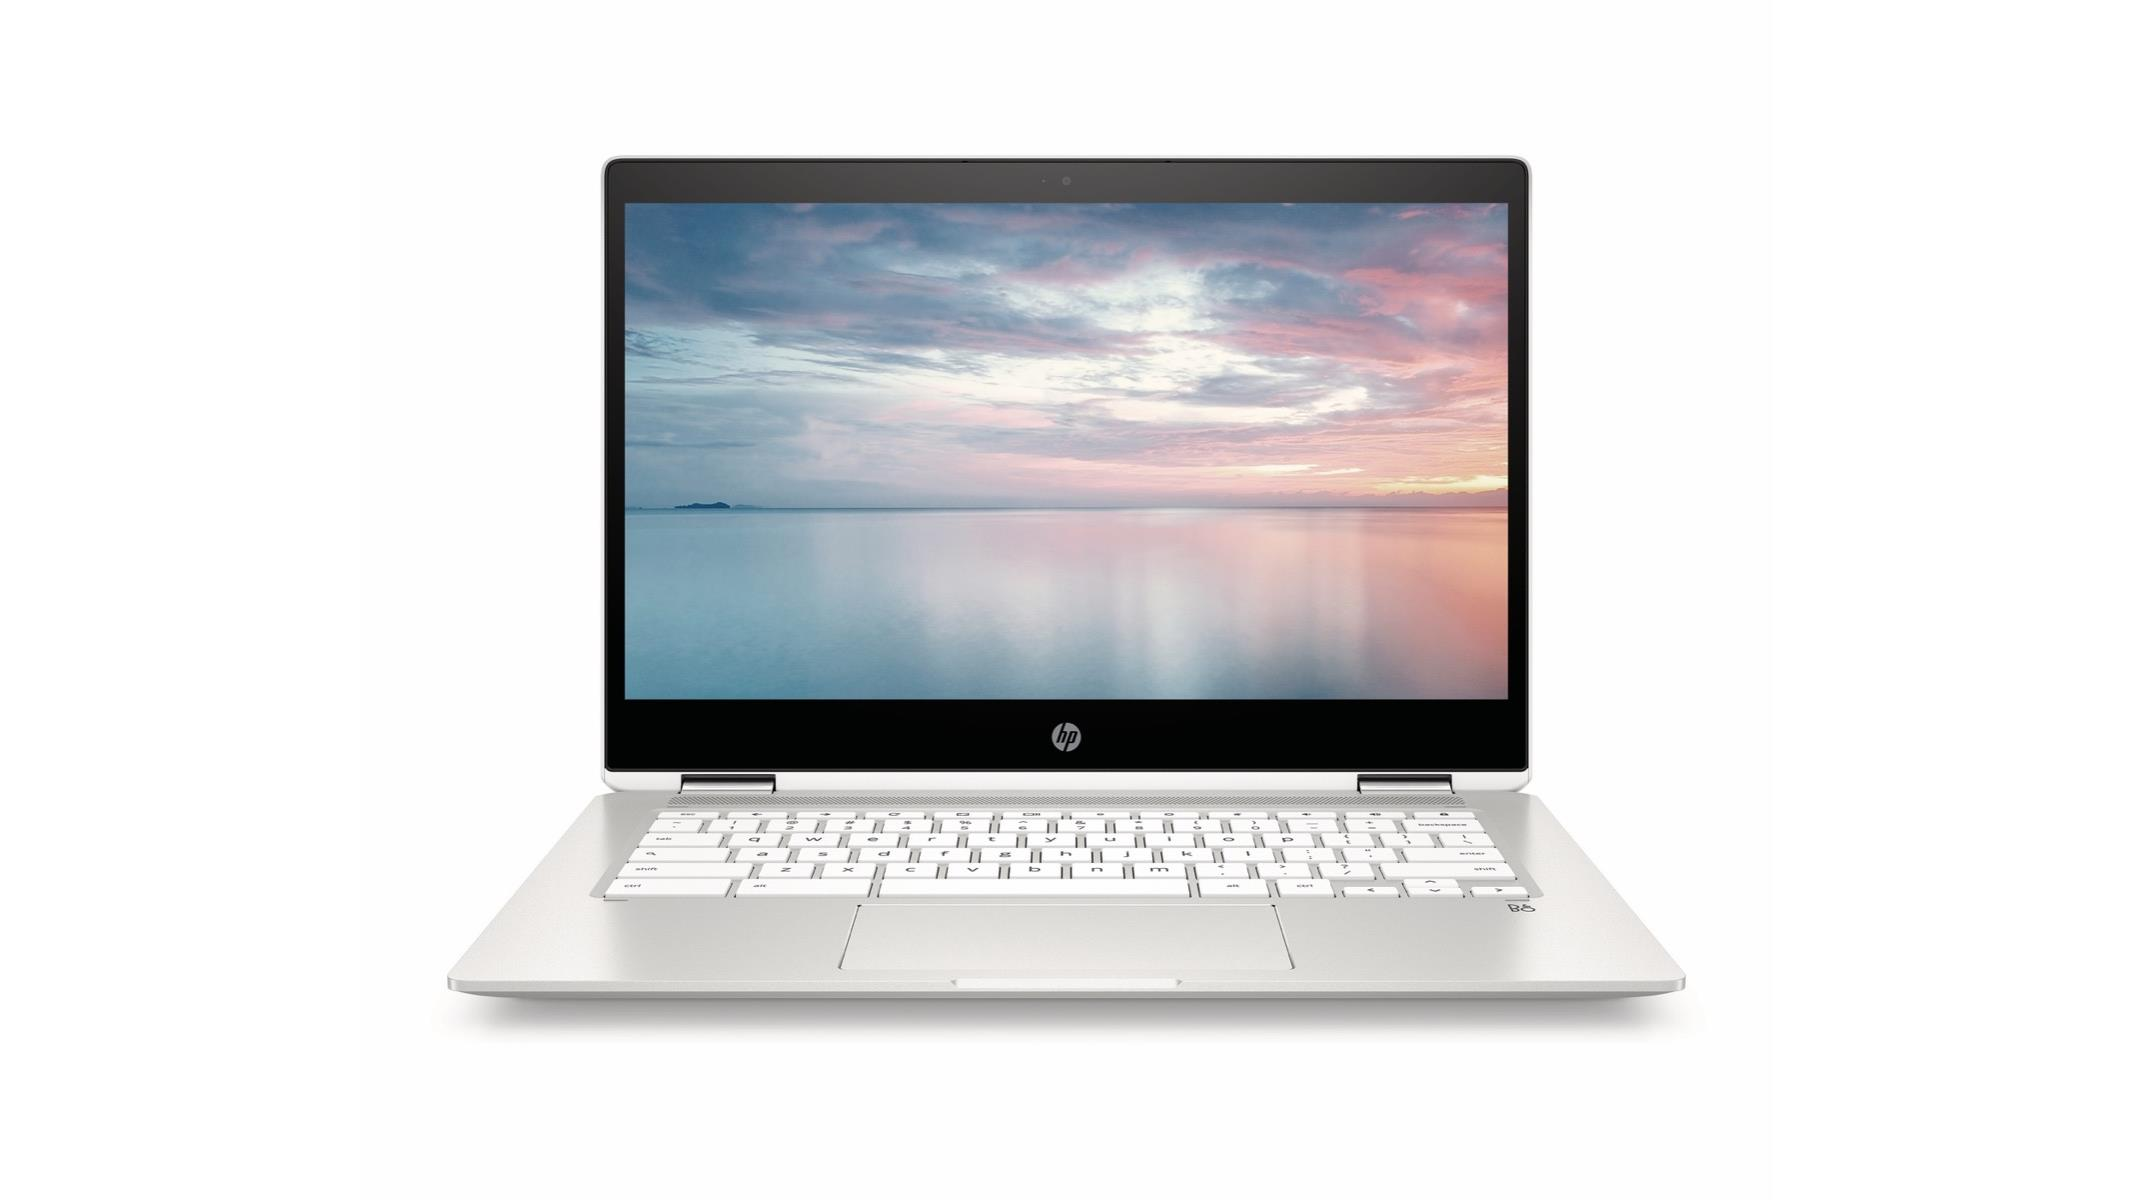 HP Pavilion 14-ce2000na Full-HD 14 Inch Laptop Broonel Grey Rechargeable Fine Point Digital Stylus Compatible with The HP Pavilion 14-ce0010na Full-HD